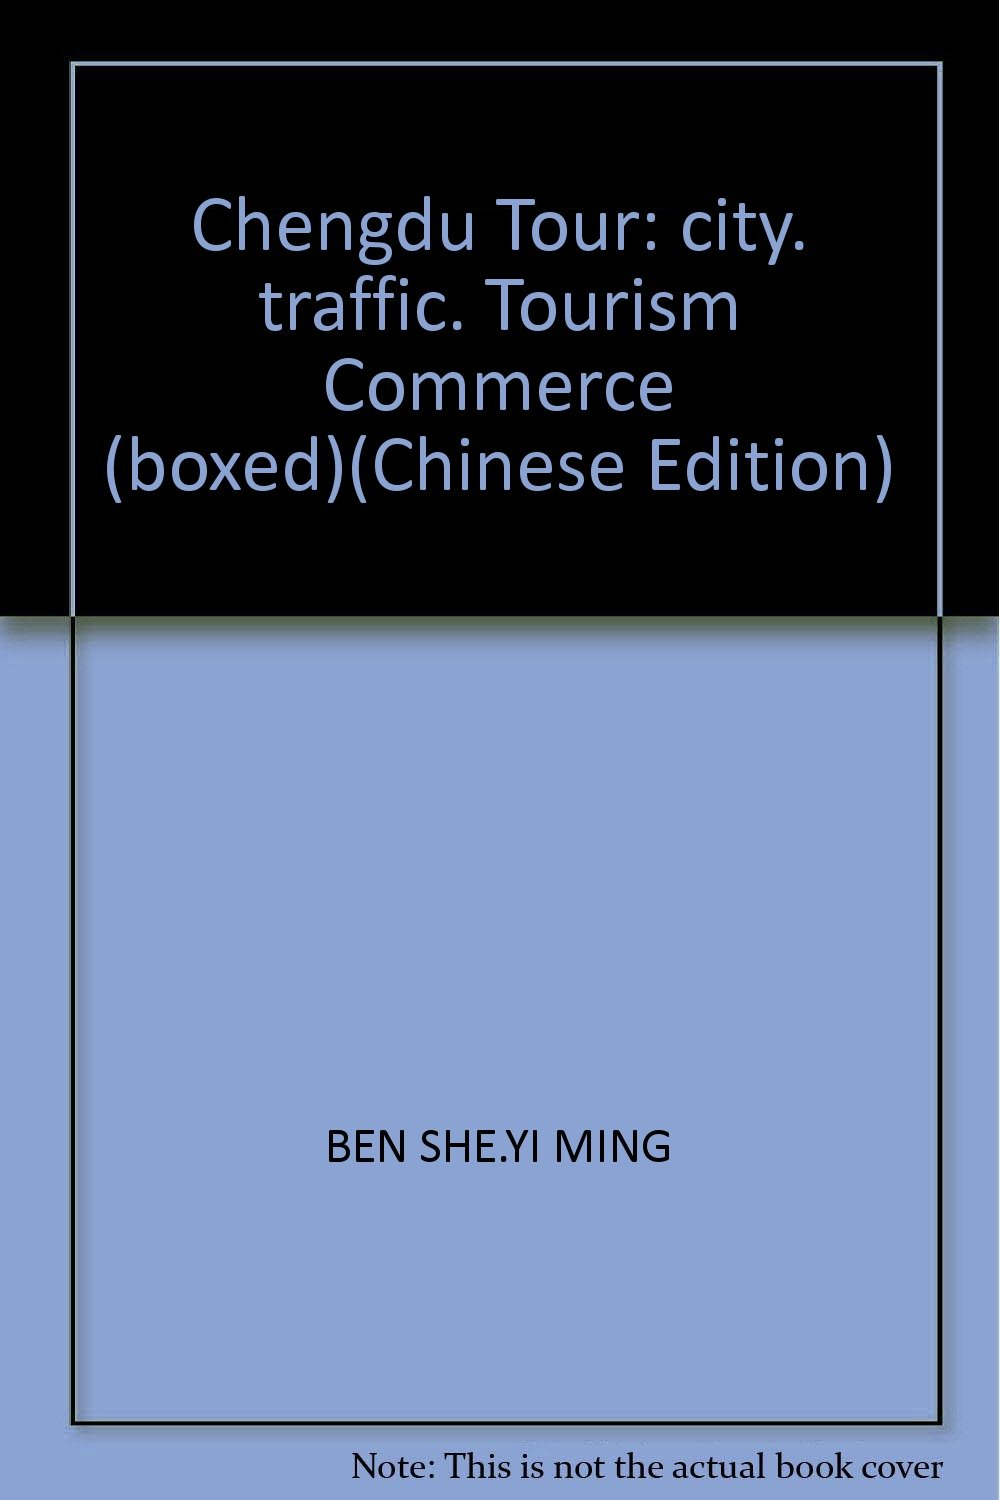 Download Chengdu Tour: city. traffic. Tourism Commerce (boxed)(Chinese Edition) PDF